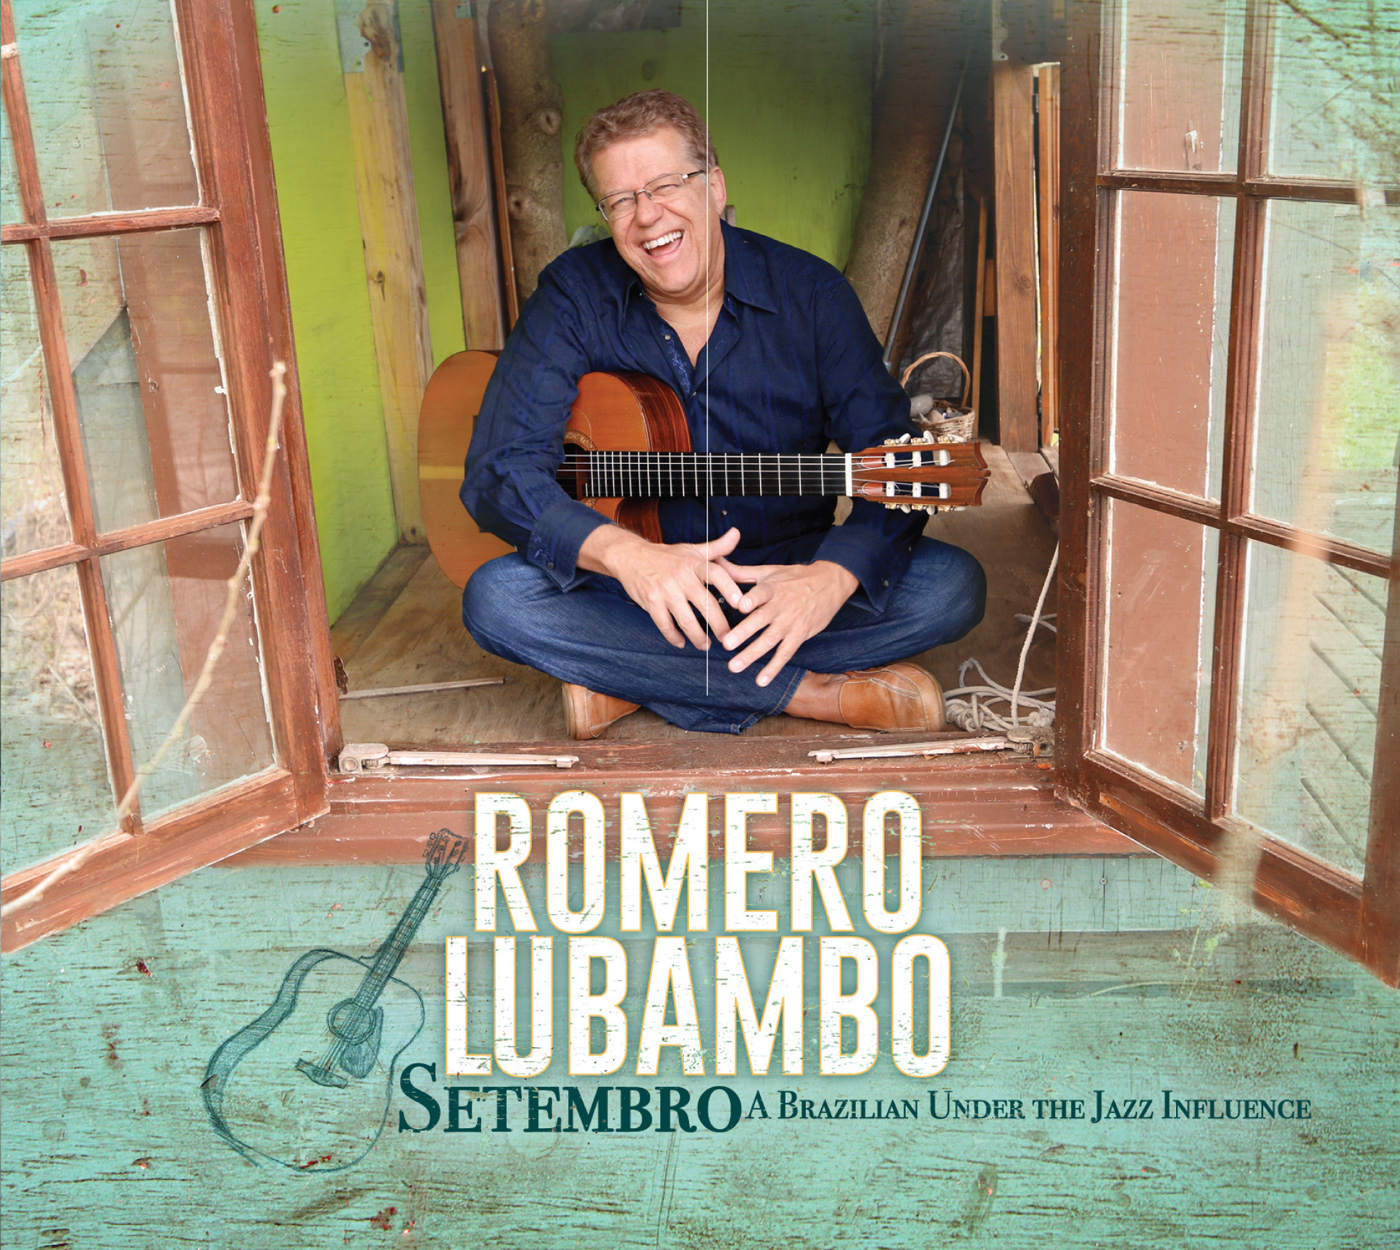 Setembro - A Brazilian Under The Jazz Influence  by Romero  Lubambo cover